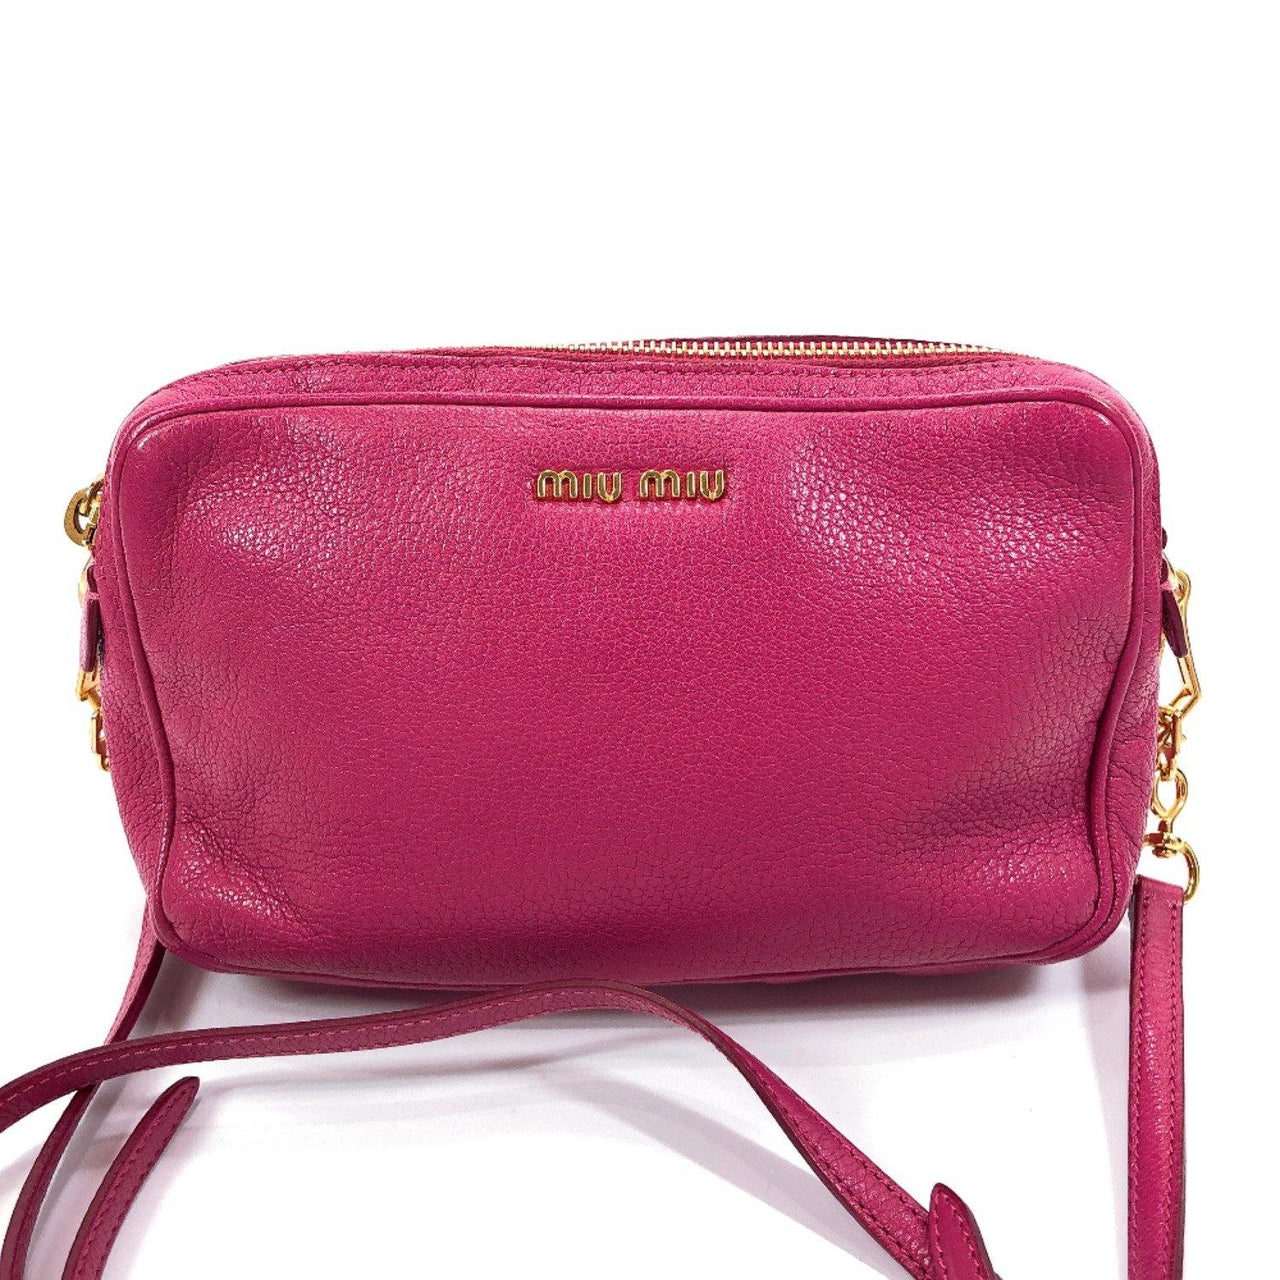 MIUMIU Shoulder Bag RT0539 leather pink Women Used